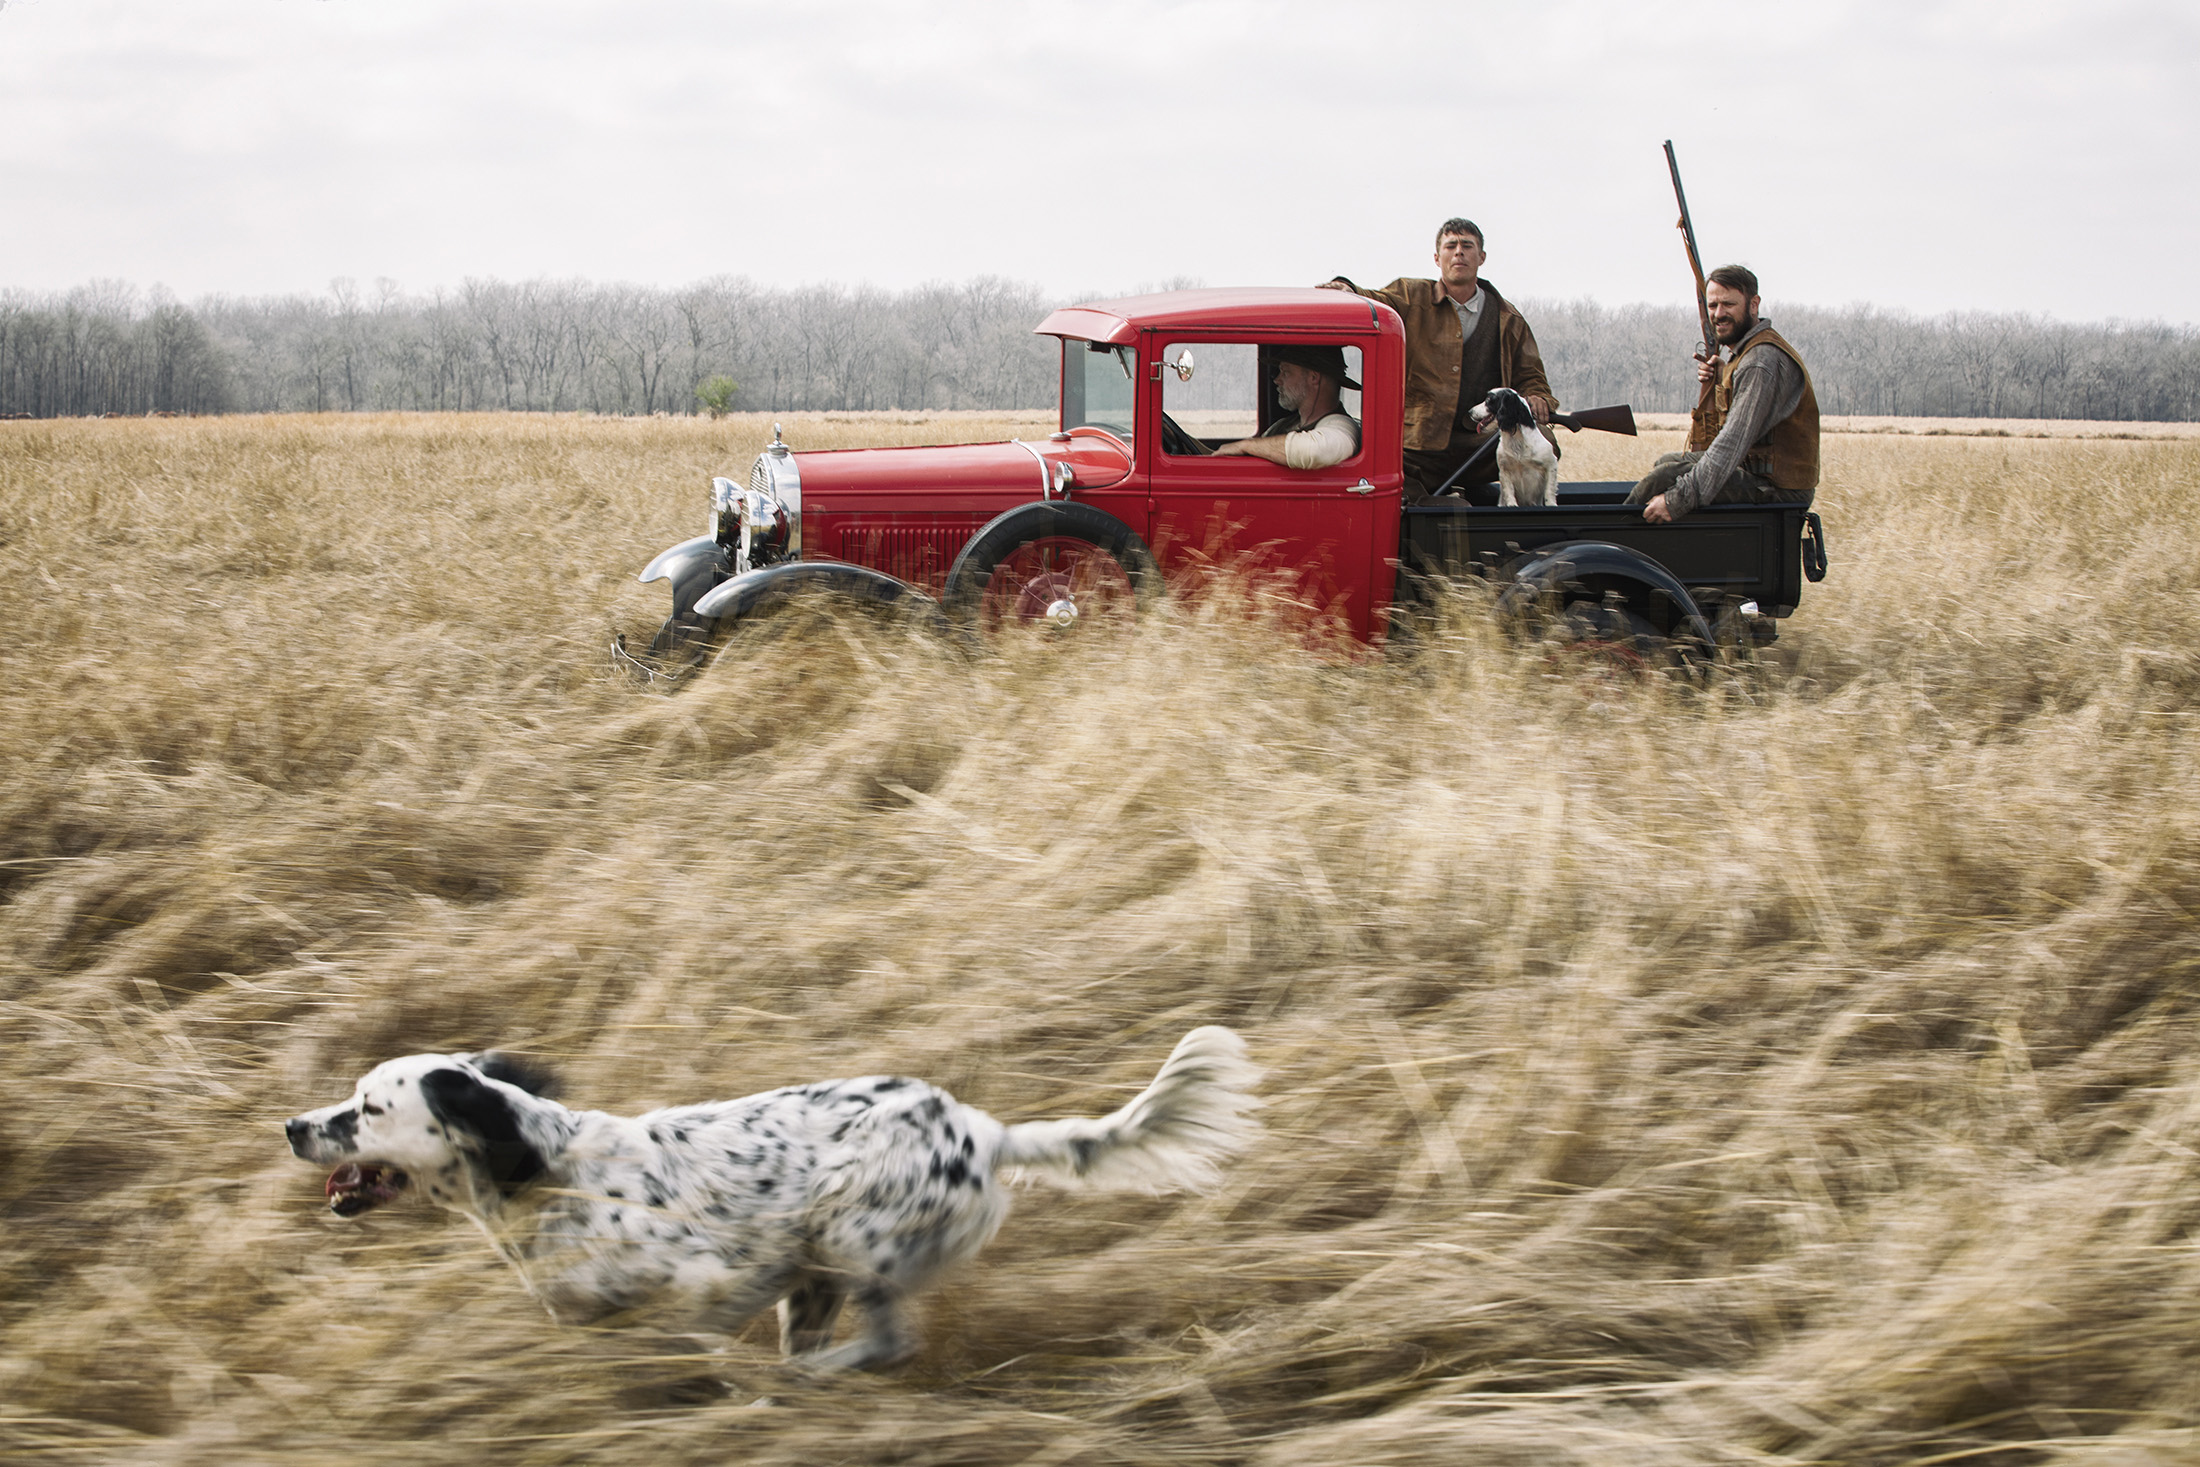 Carhartt's first hunting line launched in 1931. Its all-new high-performance hunting gear launched in the fall of 2016.